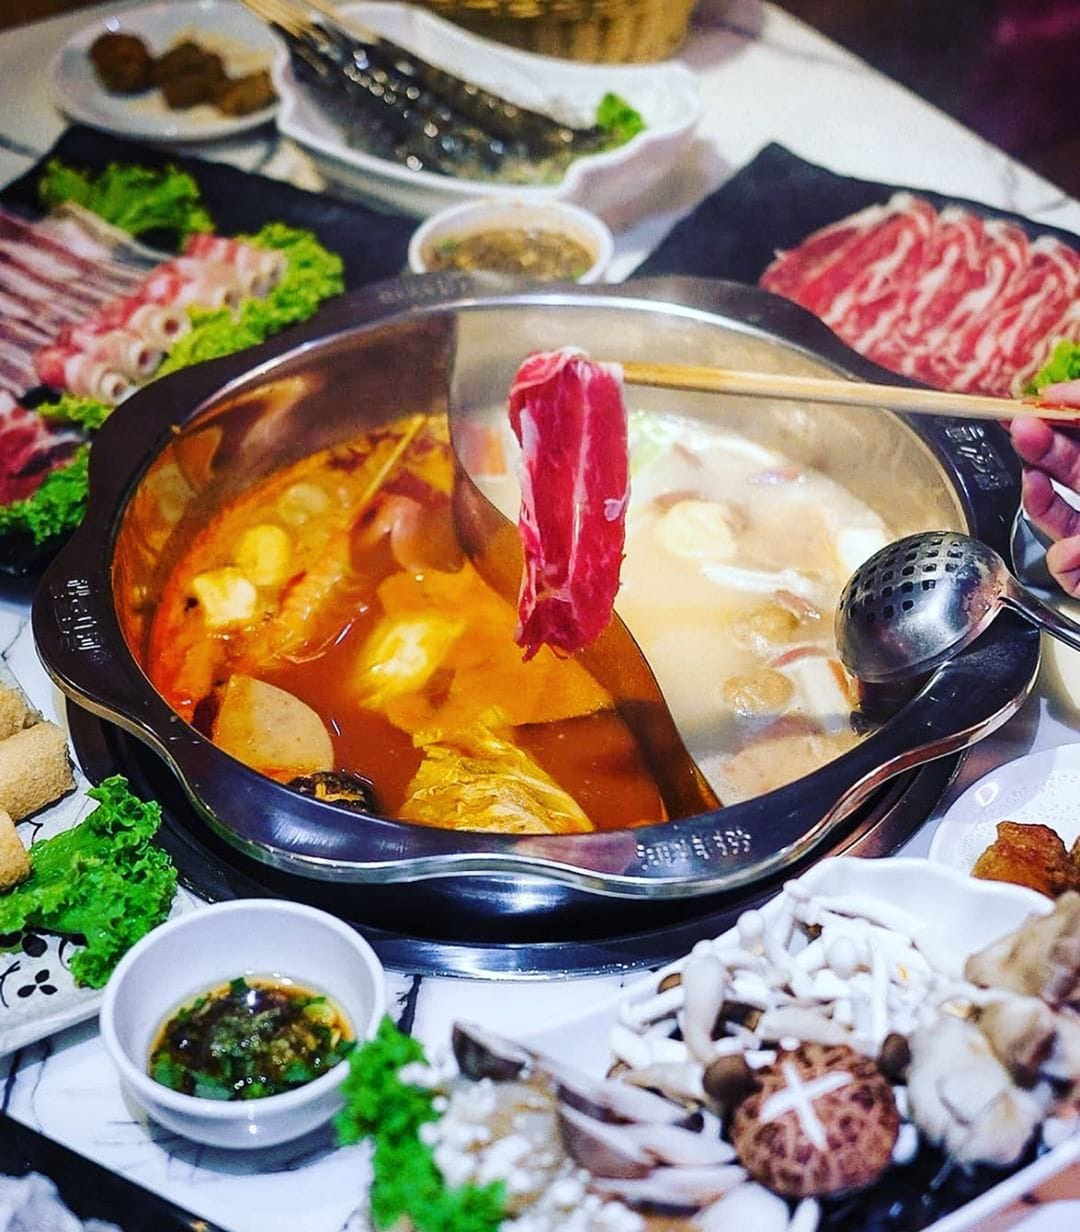 1 For 1 Food Deals - Hai Xian Lao Hotpot